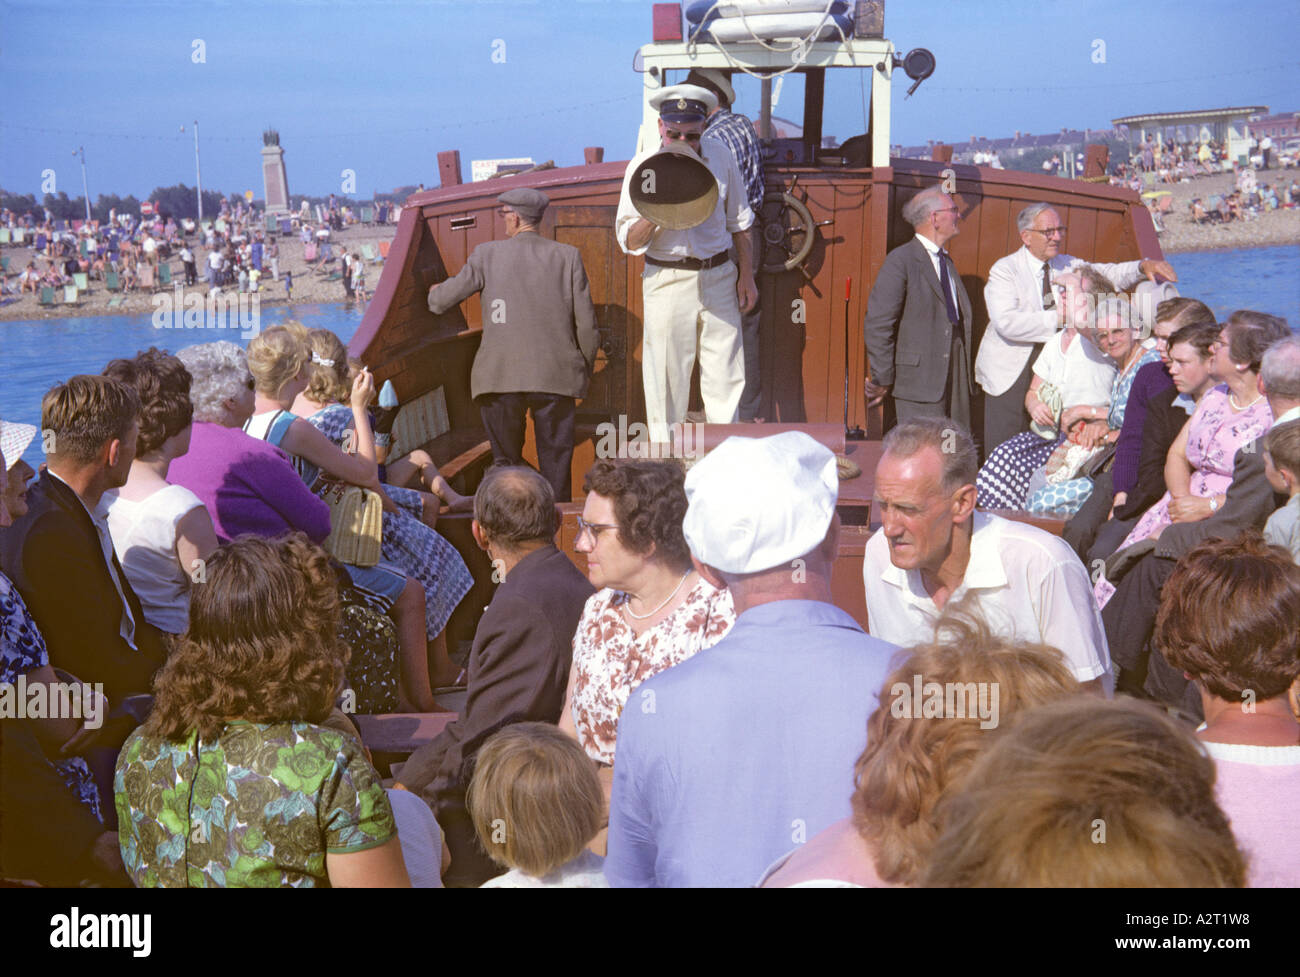 '^Holidaymakers on a boat trip, ^1960, 'The Solent', Portsmouth' - Stock Image